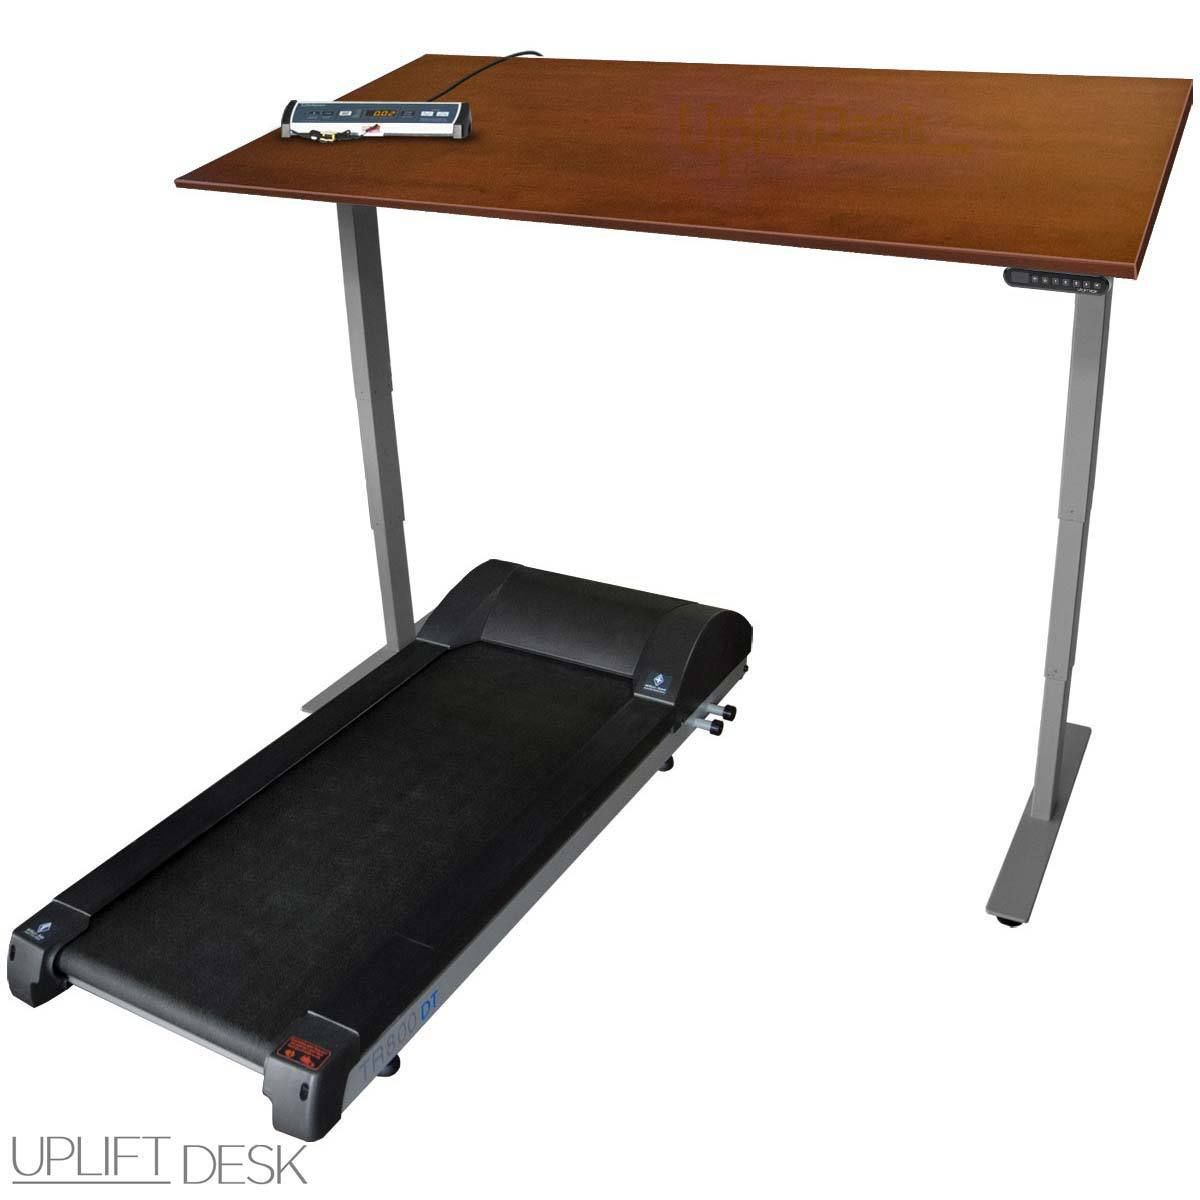 Sit Stand And Walk Throughout The Day With The Uplift Treadmill Desk Combat Sitting Disease And Access The Many Benefits Of Movement Treadmill Desk Desk Best Standing Desk